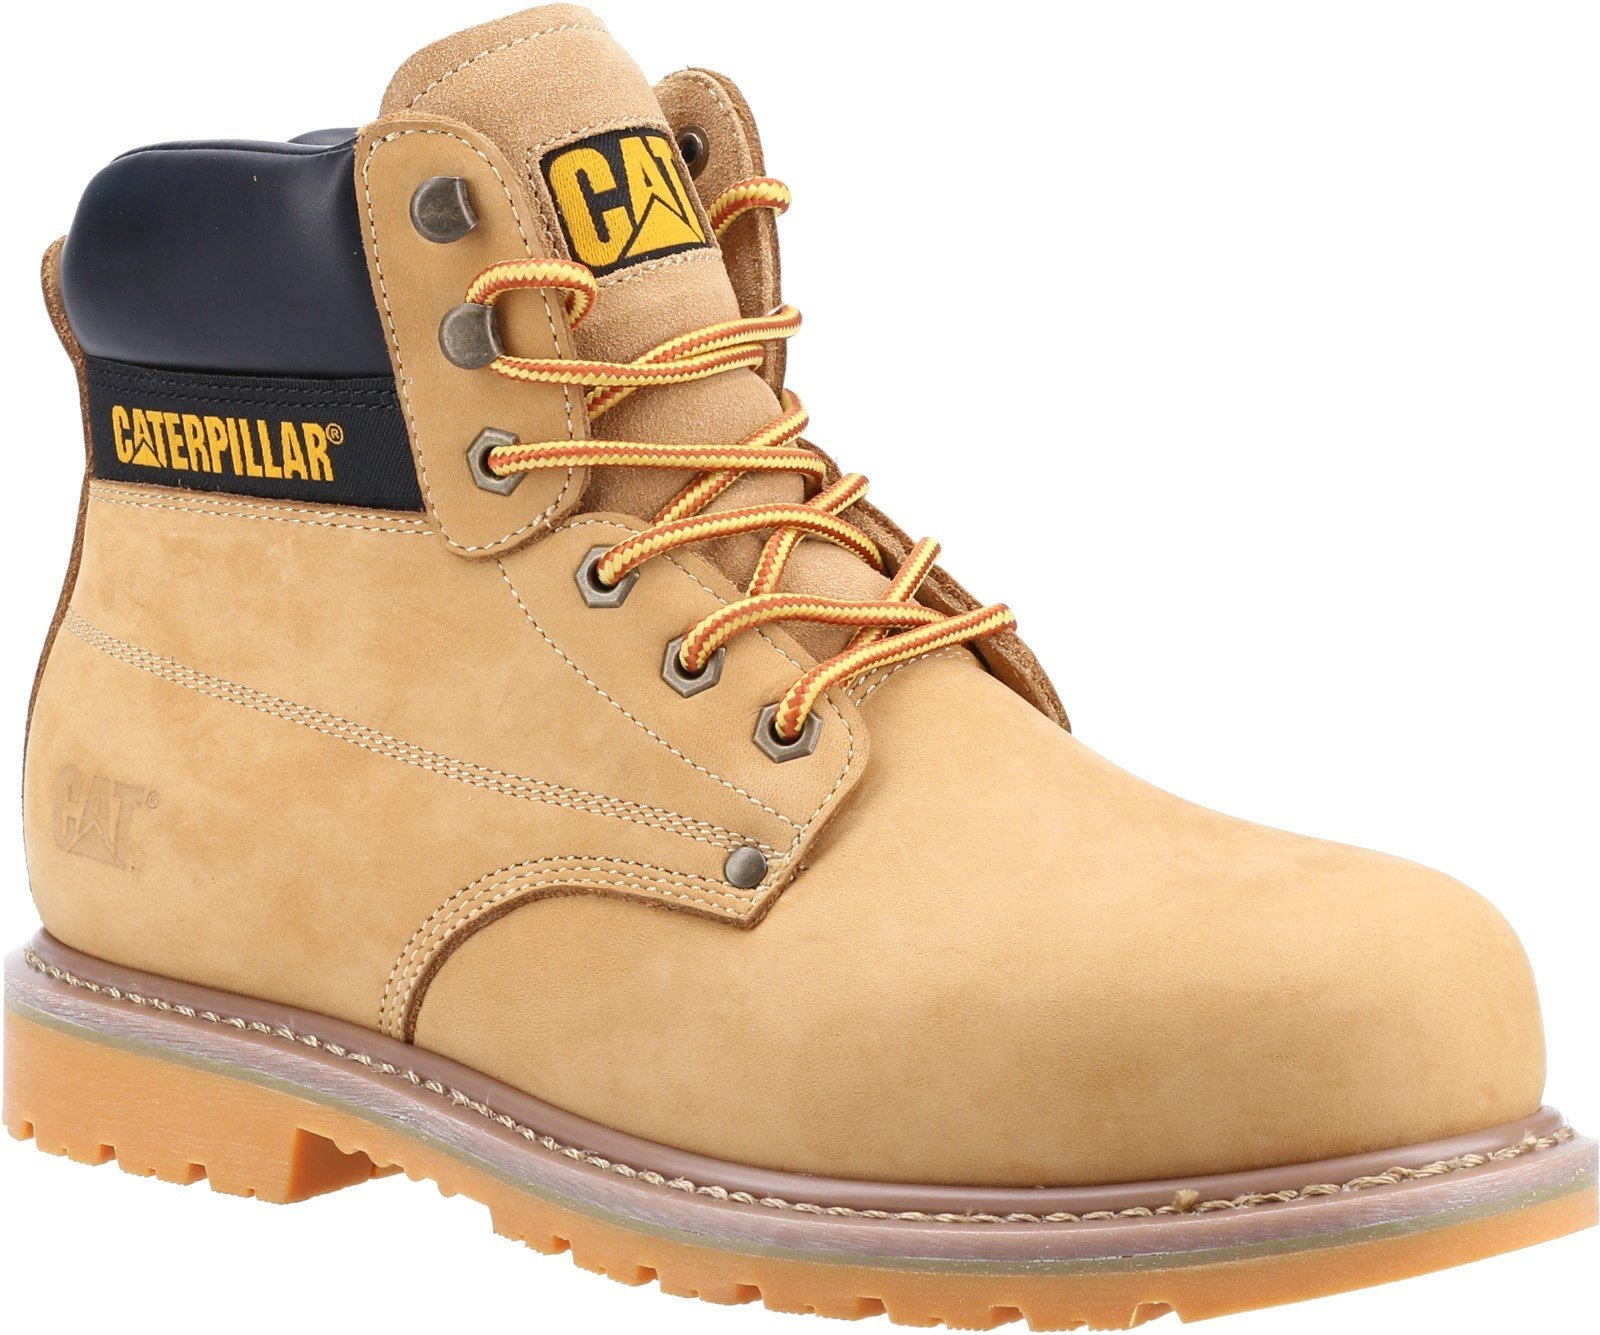 Caterpillar Unisex Powerplant S3 GYW Safety Boot Various Colours 32630 - Honey 6